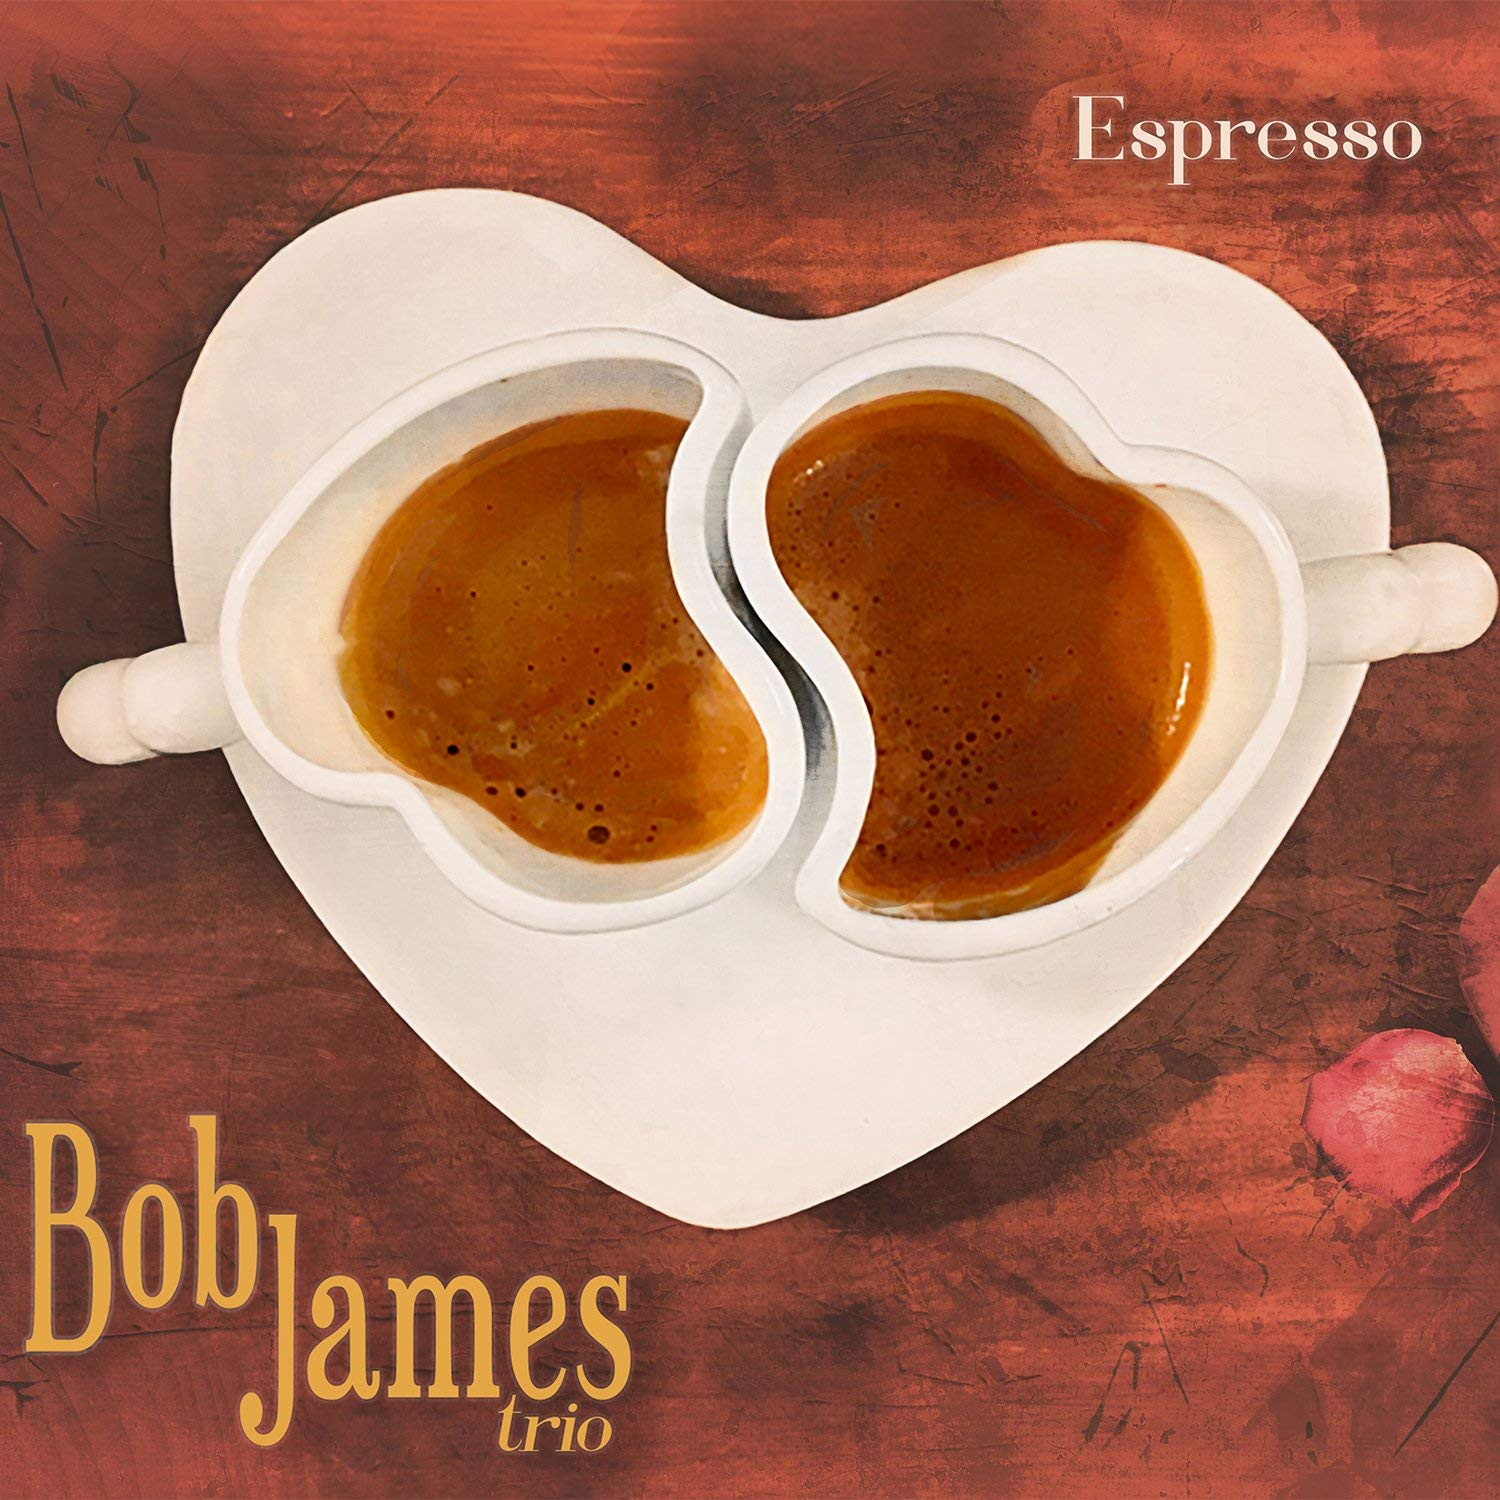 BOB JAMES - Espresso cover